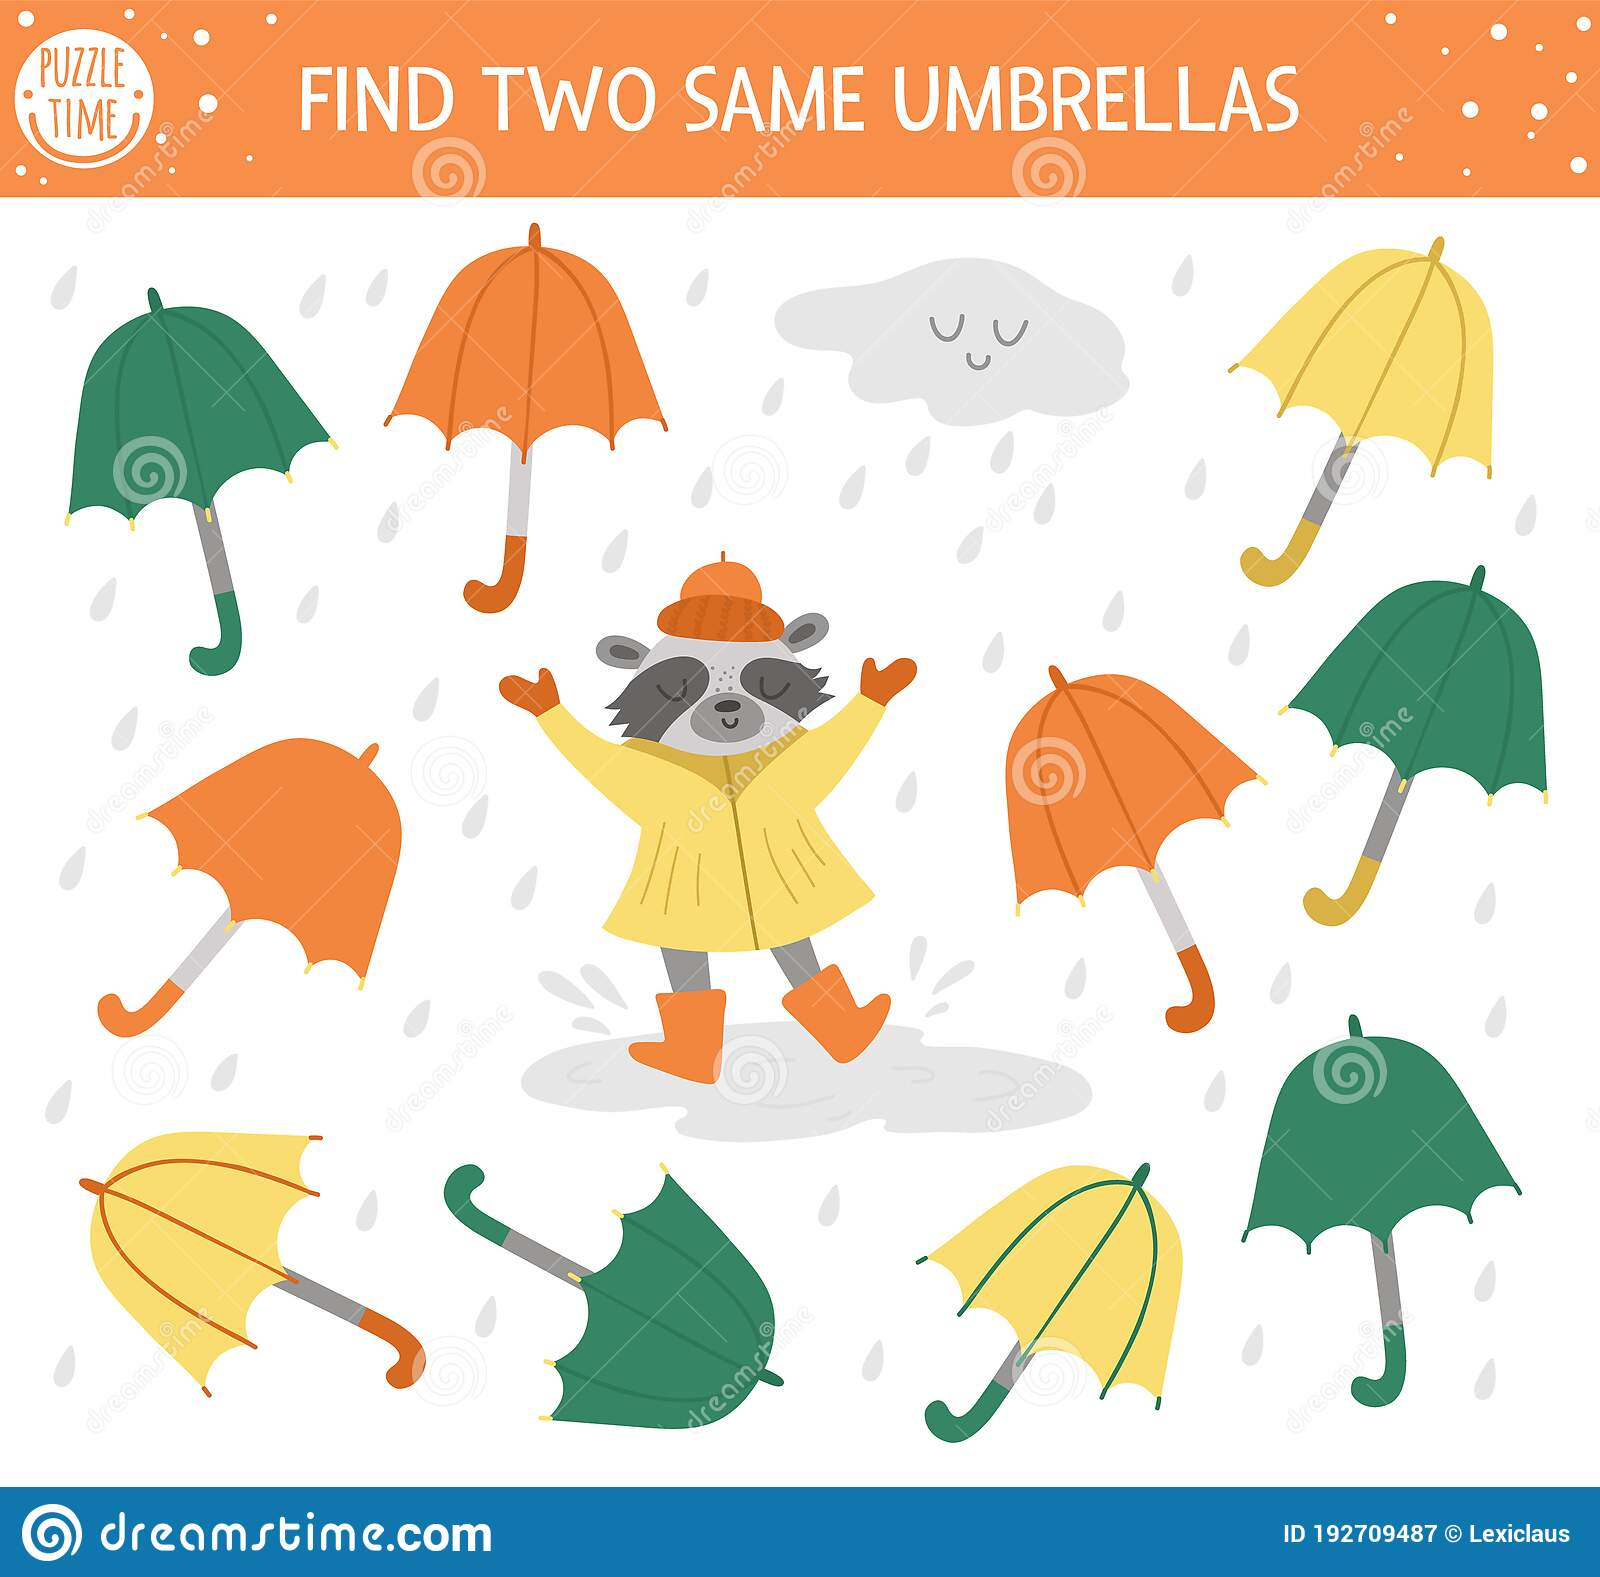 Find Two Same Umbrellas Autumn Matching Activity For